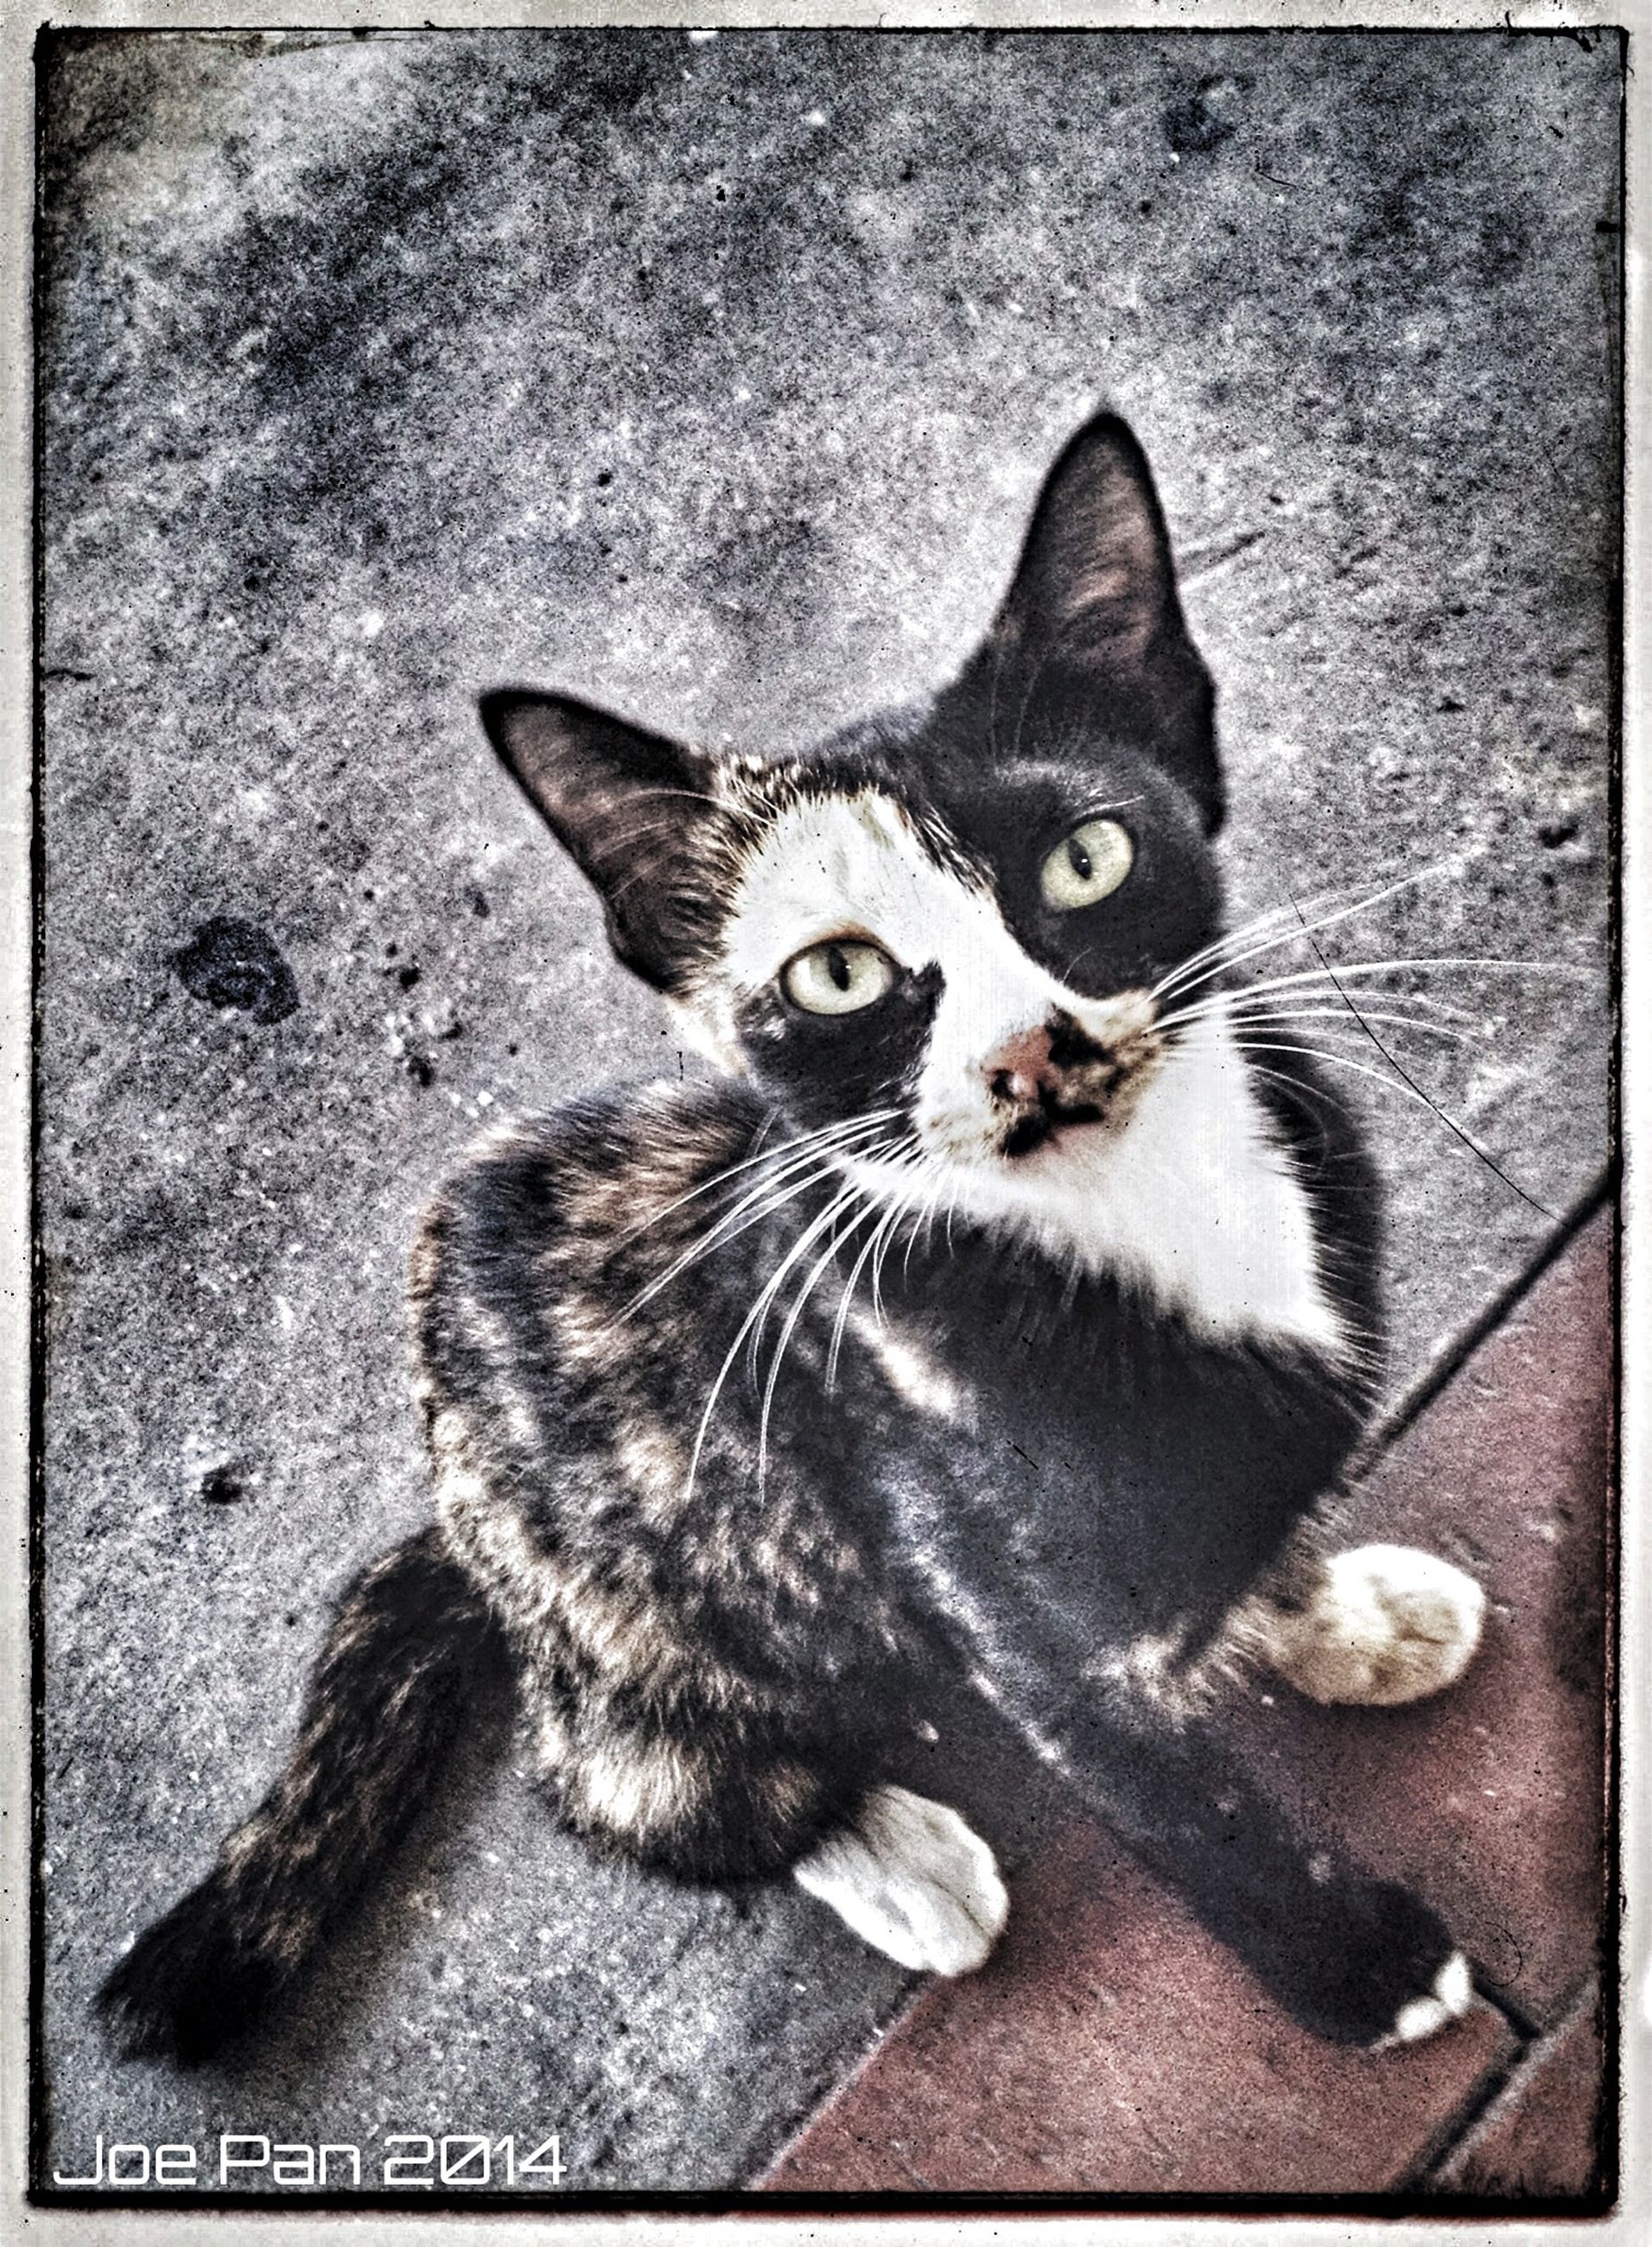 domestic cat, cat, pets, animal themes, one animal, feline, domestic animals, whisker, mammal, portrait, looking at camera, transfer print, auto post production filter, alertness, sitting, close-up, staring, high angle view, relaxation, zoology